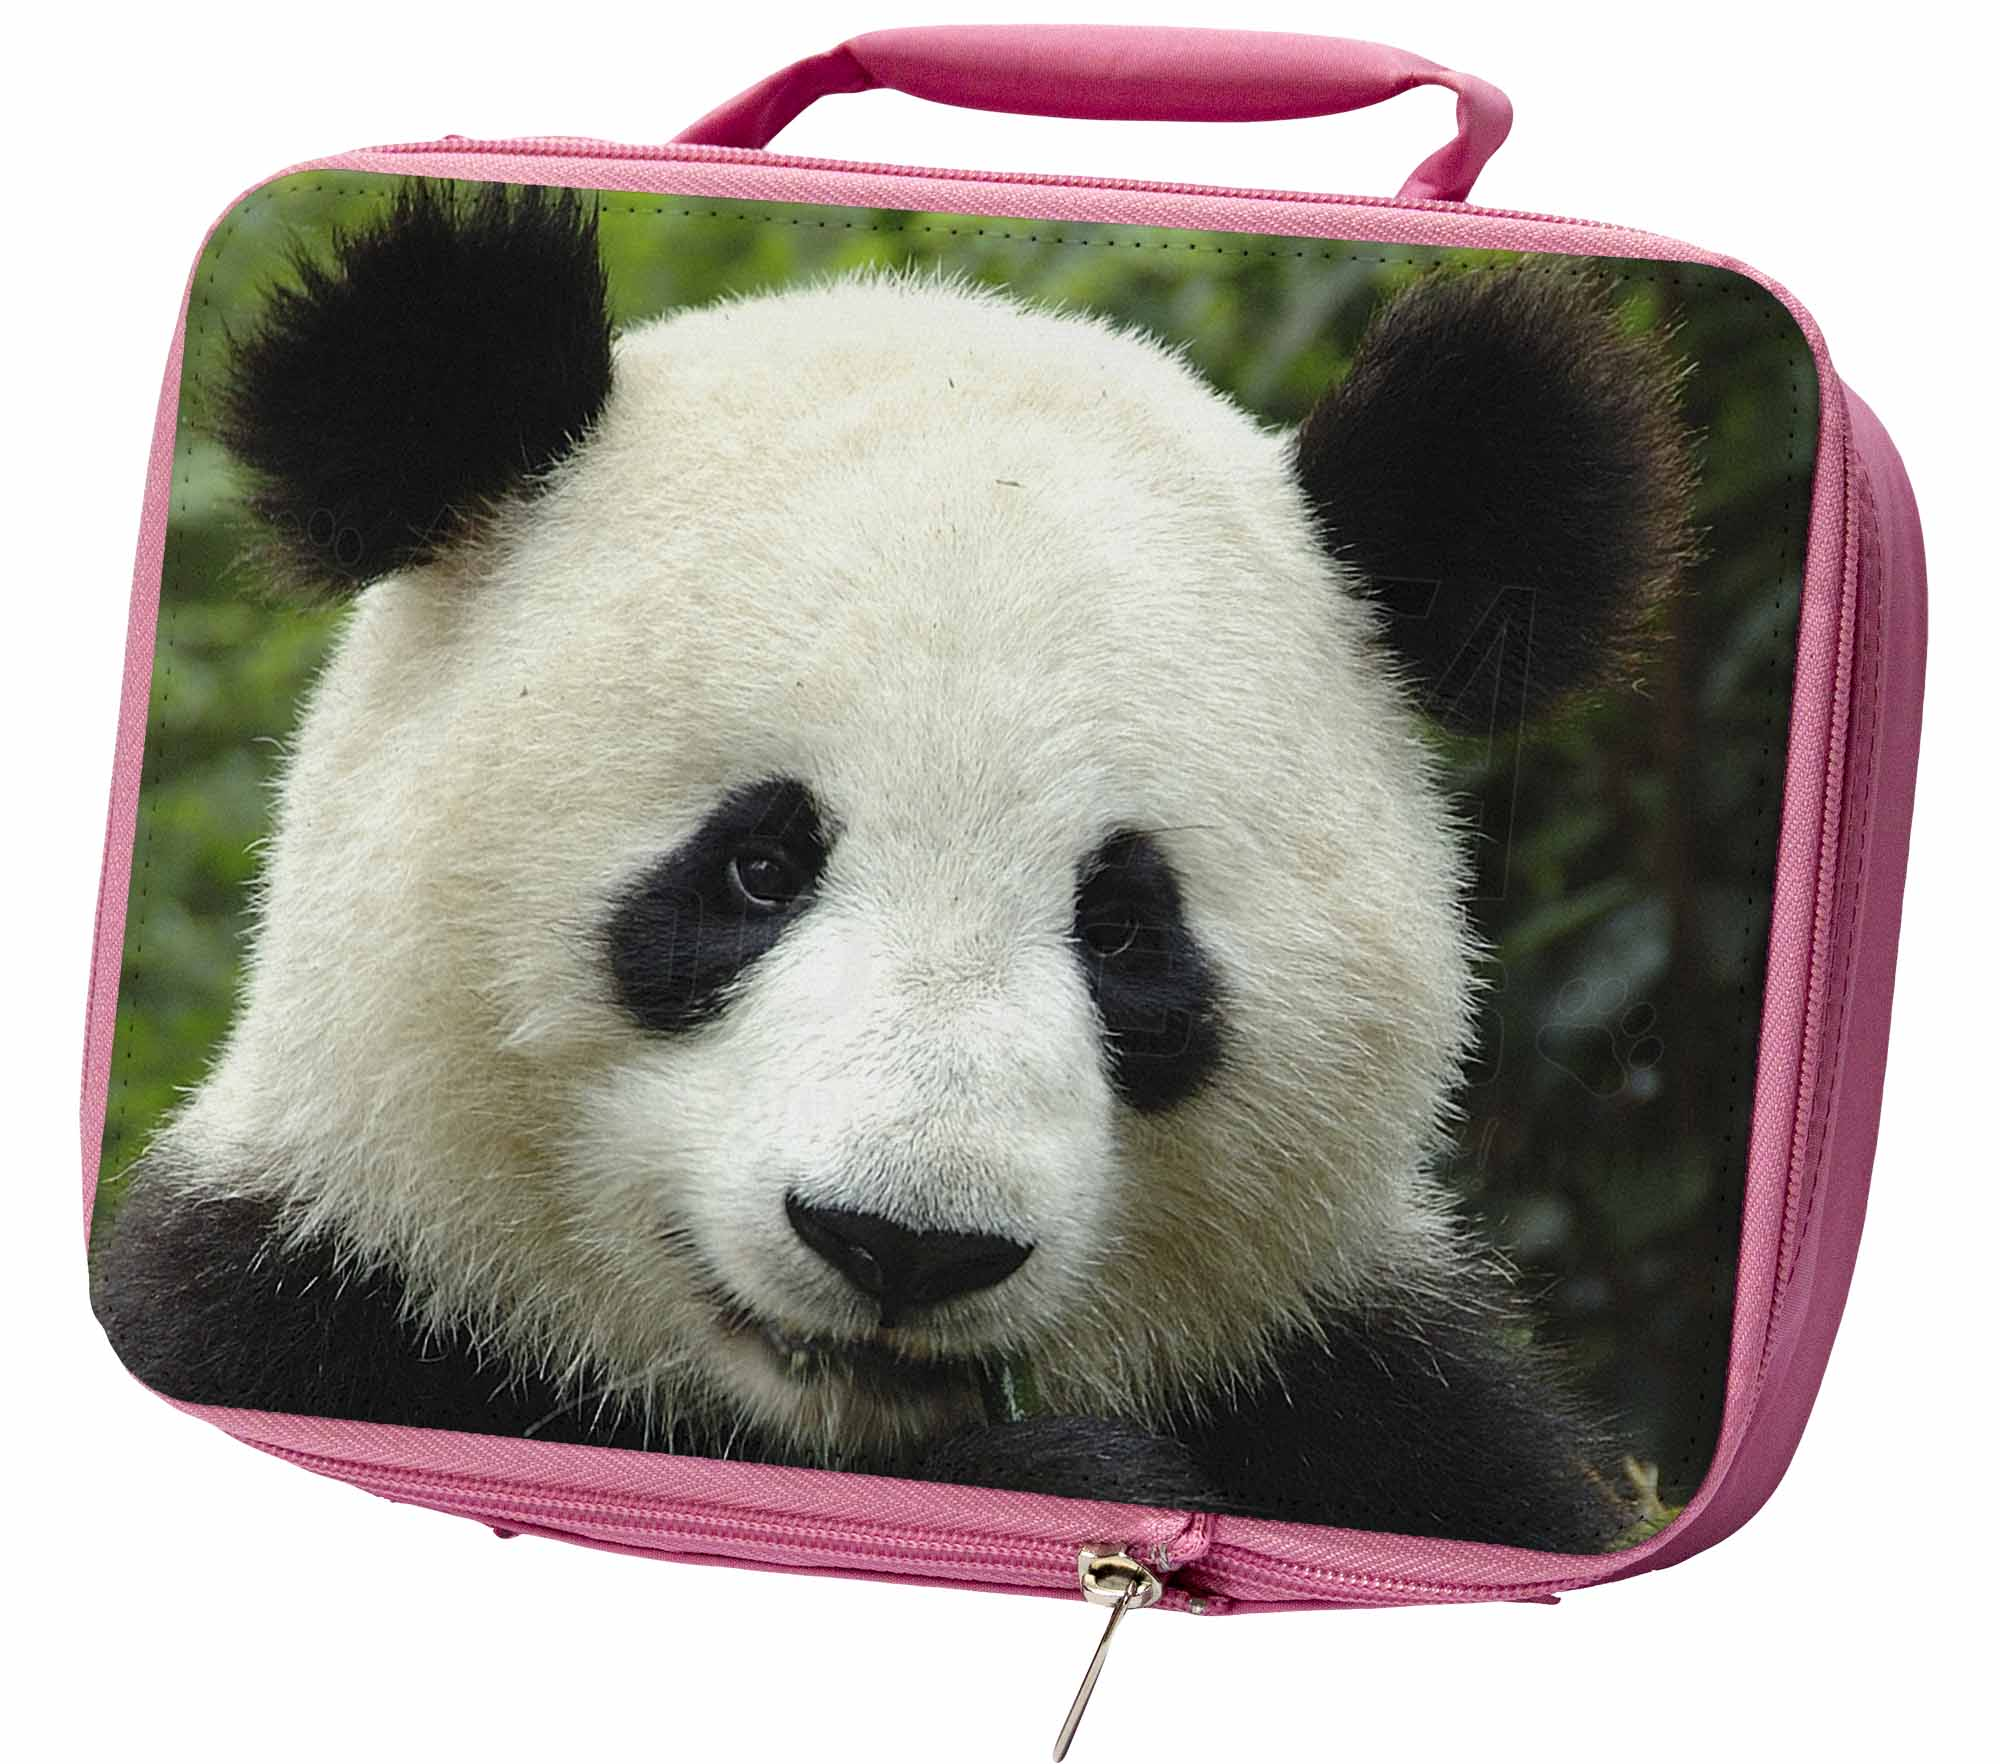 Home, Furniture & DIY Face of a Giant Panda Bear Insulated Pink School Lunch Box Bag ABP-3LBP